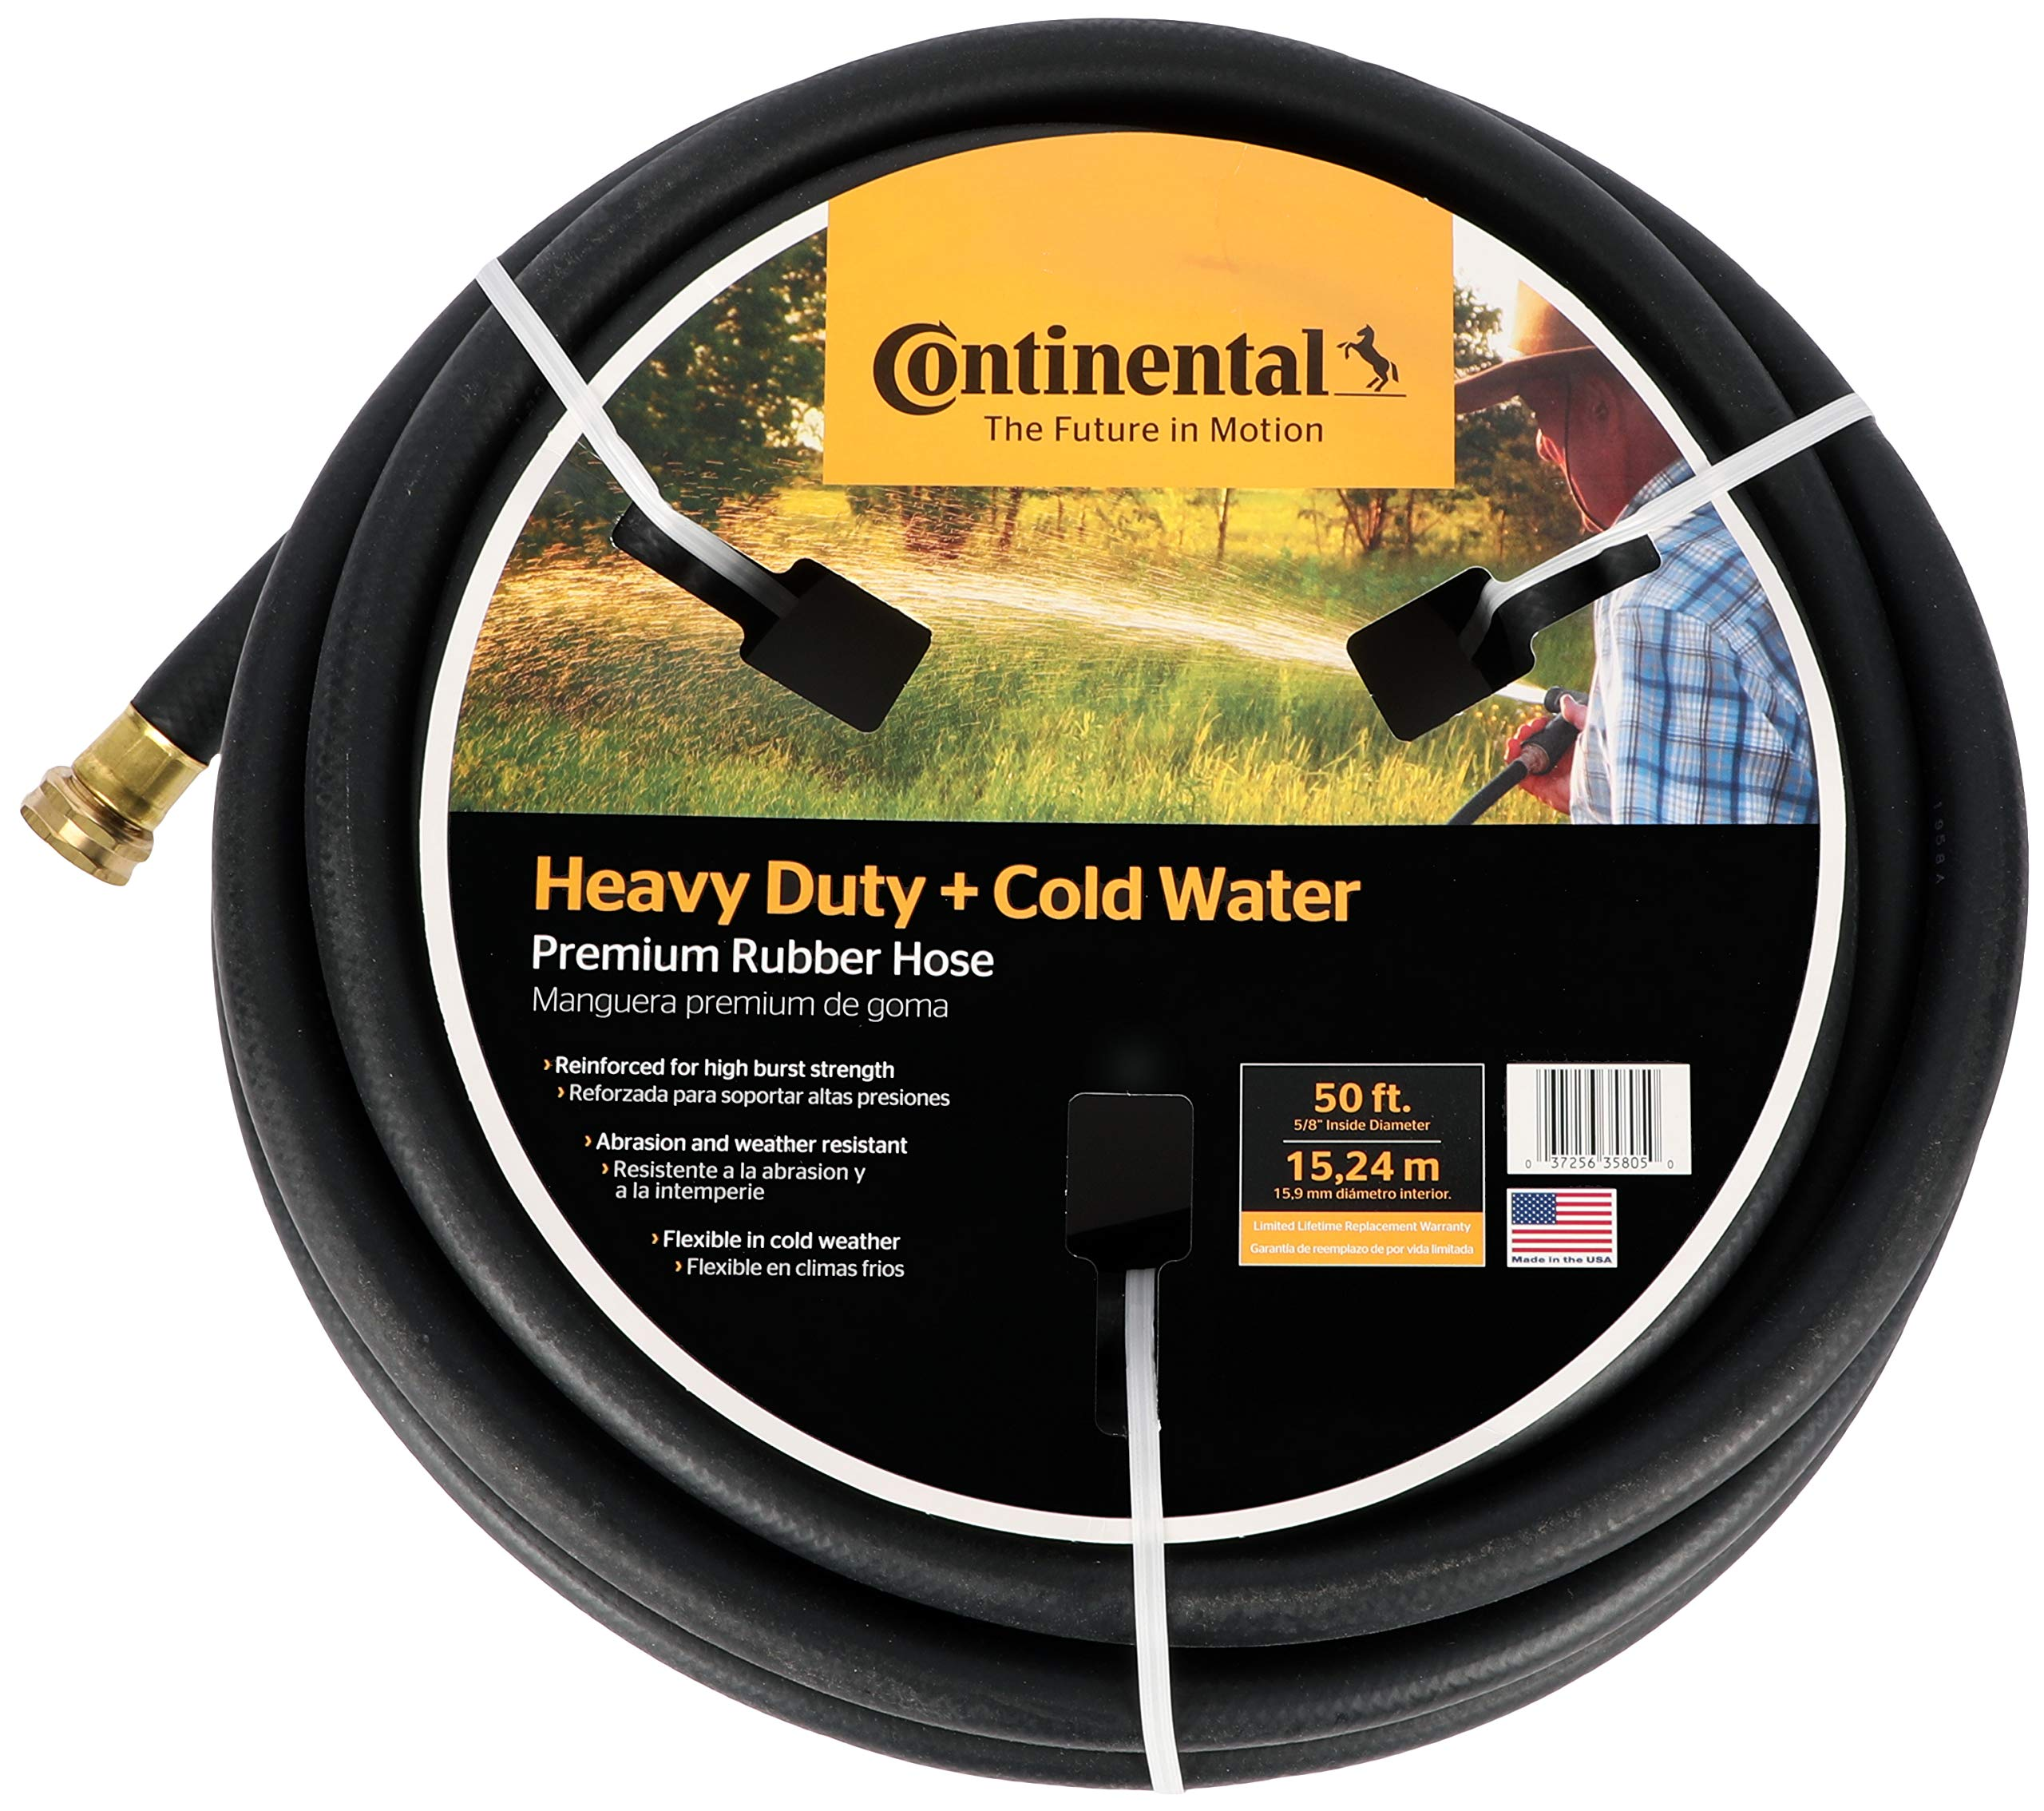 Continental Premium Cold Water Heavy Duty Black EPDM Garden Hose, 5/8'' ID x 50' Length Reel by Continental